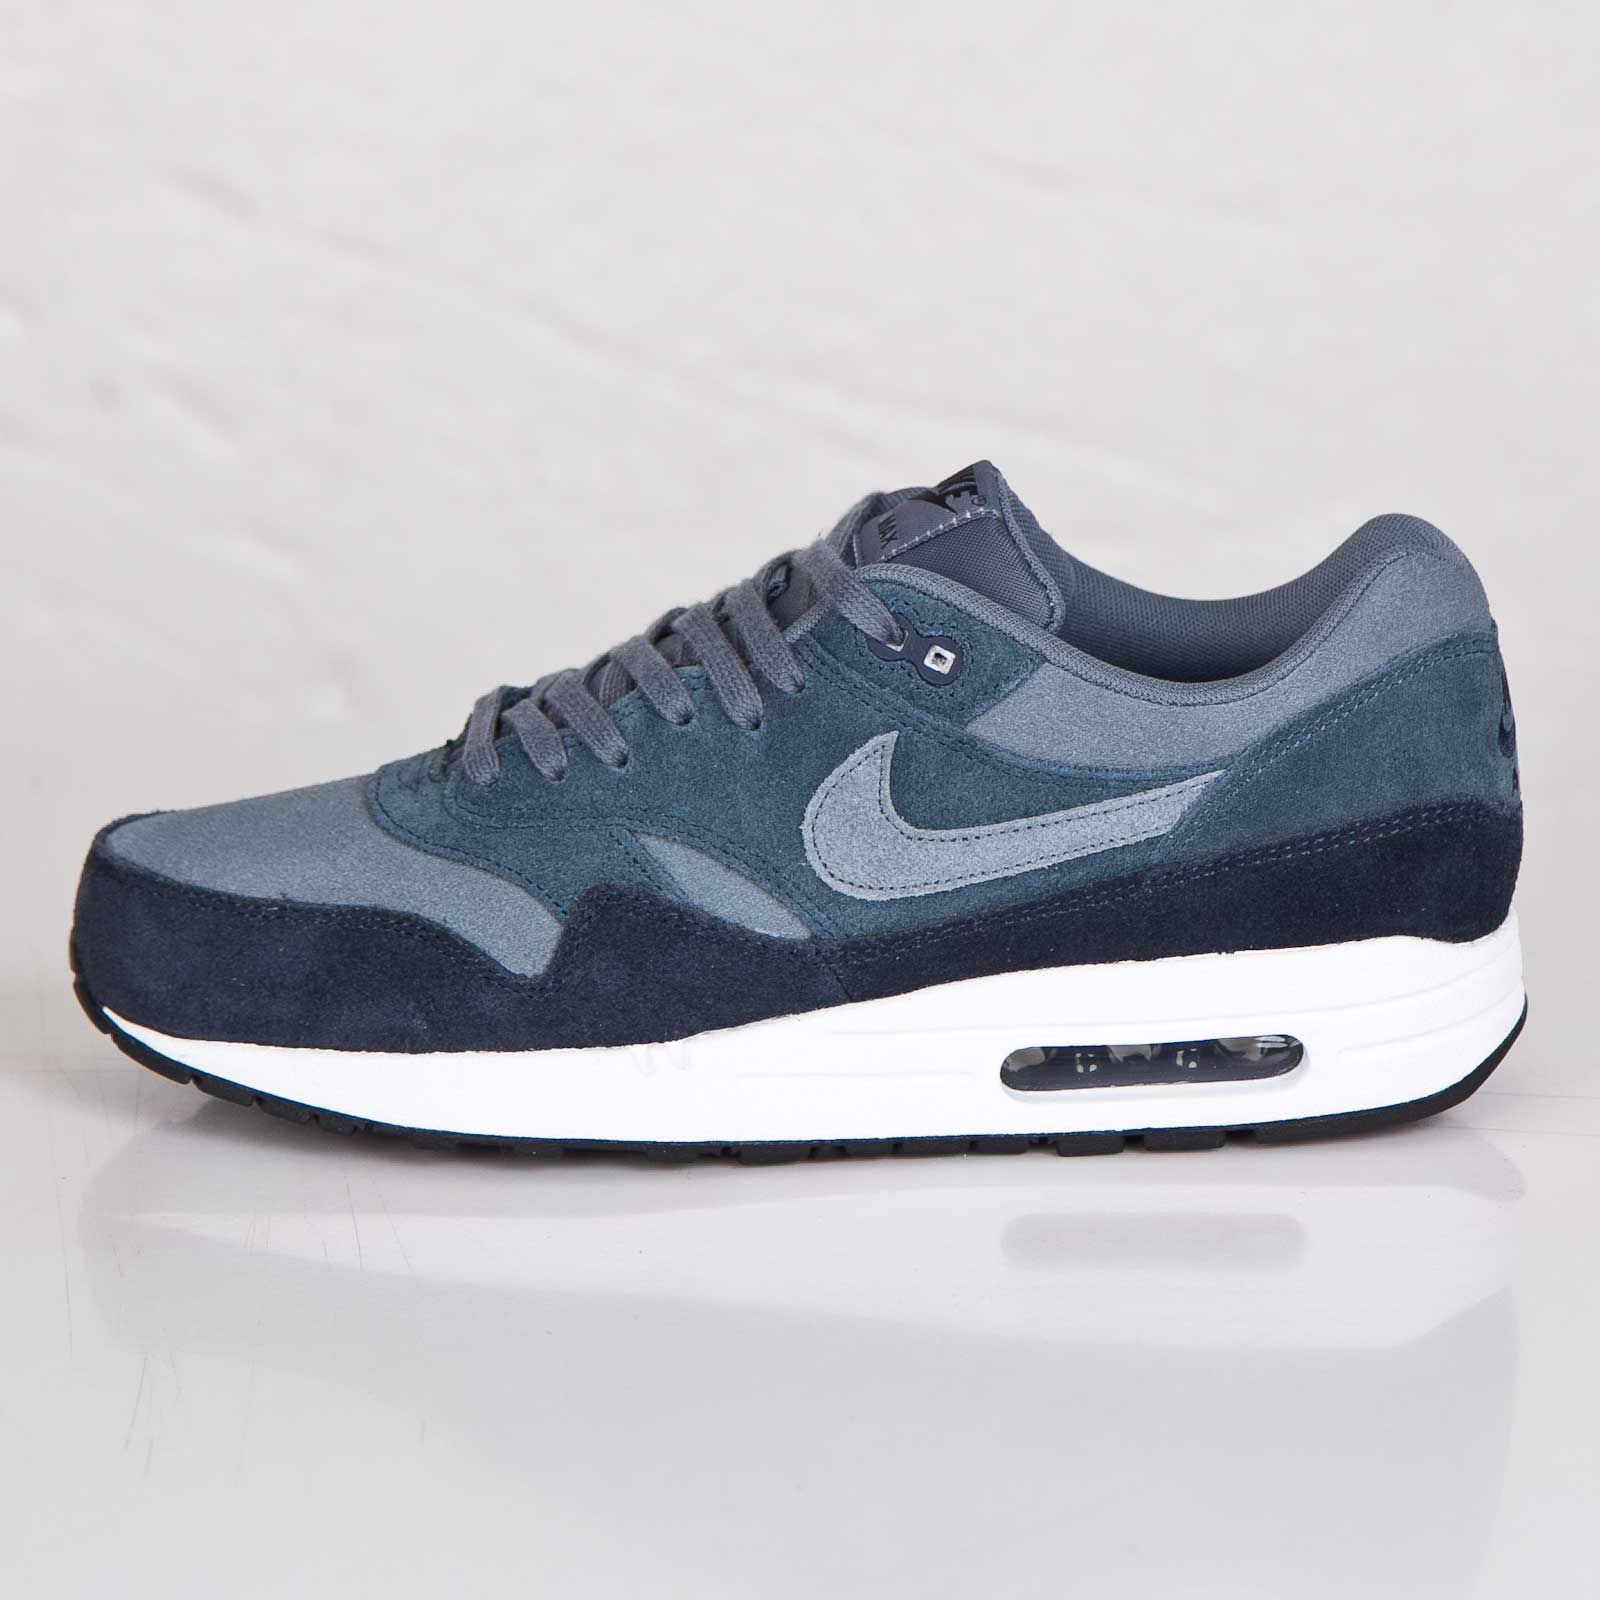 low priced ecb96 59f53 Nike Air Max 1 Essential LTR - 7. Close